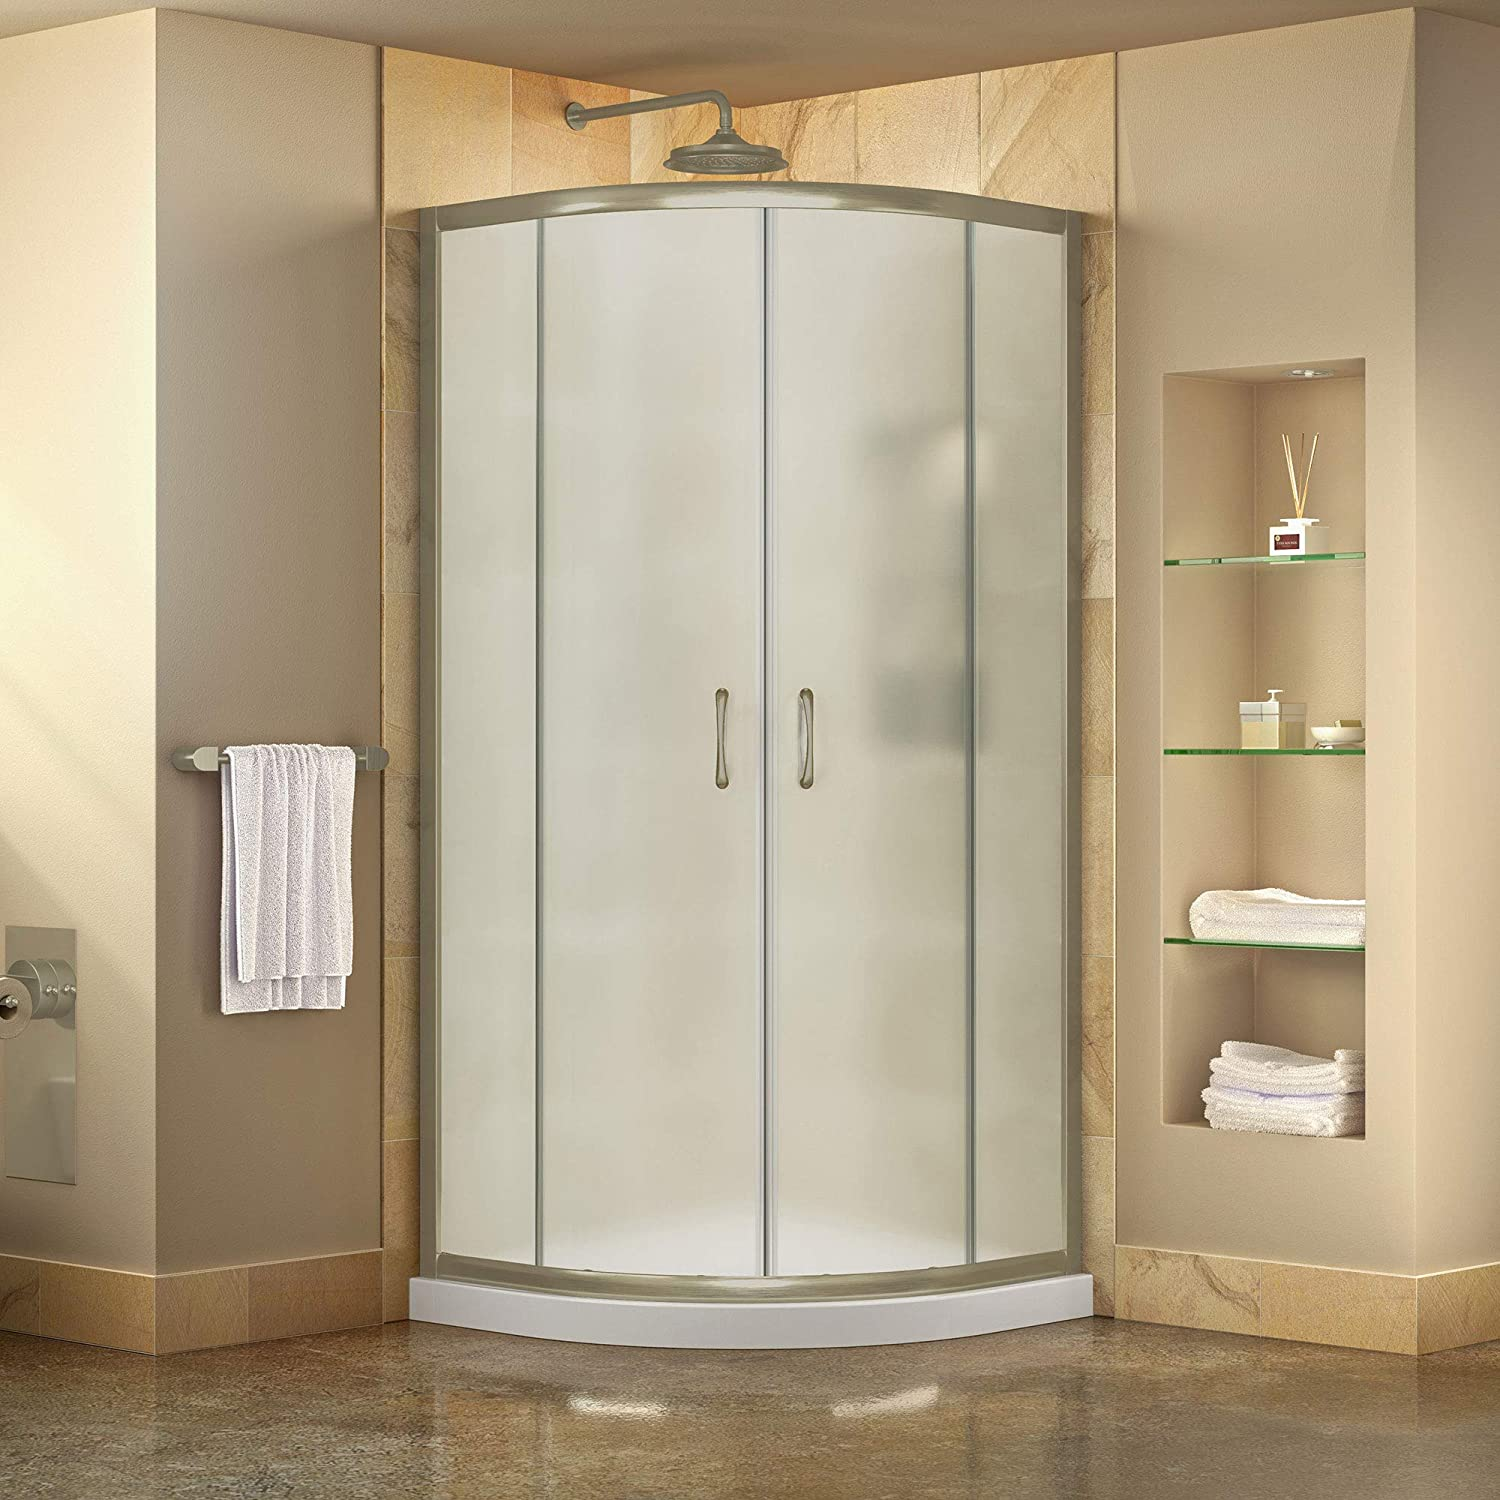 DreamLine DL-6703-04FR Prime Shower Enclosure and Base, 38 W x 38 D, Brushed Nickel